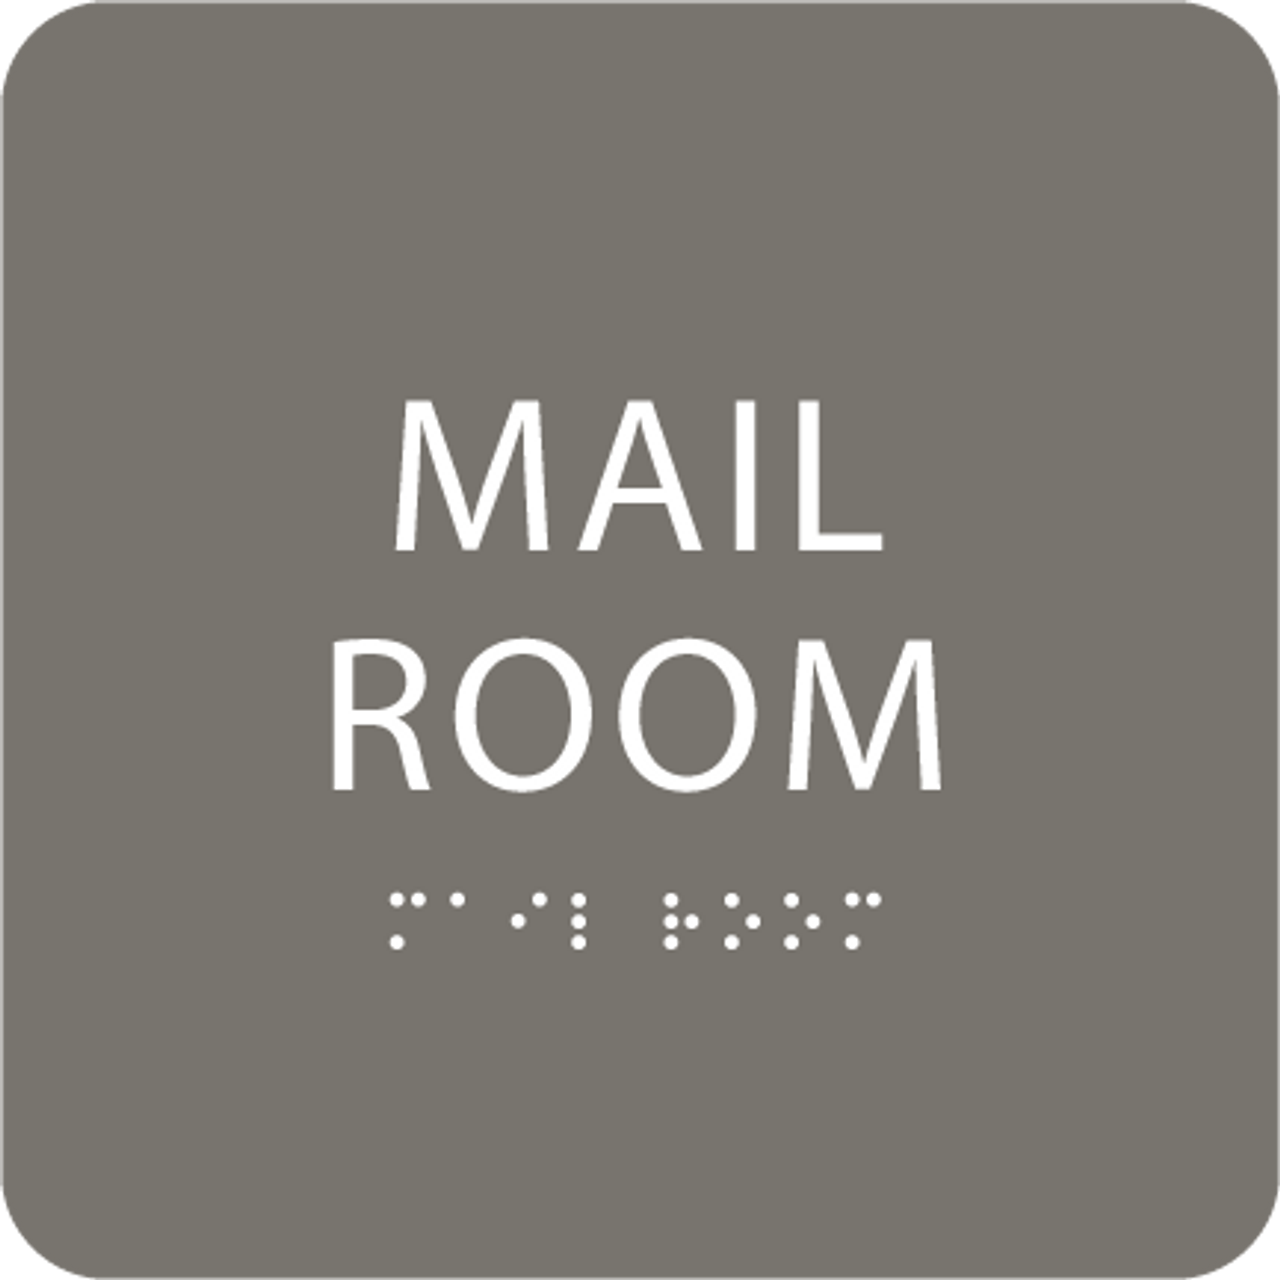 Dark Grey Mail Room ADA Sign